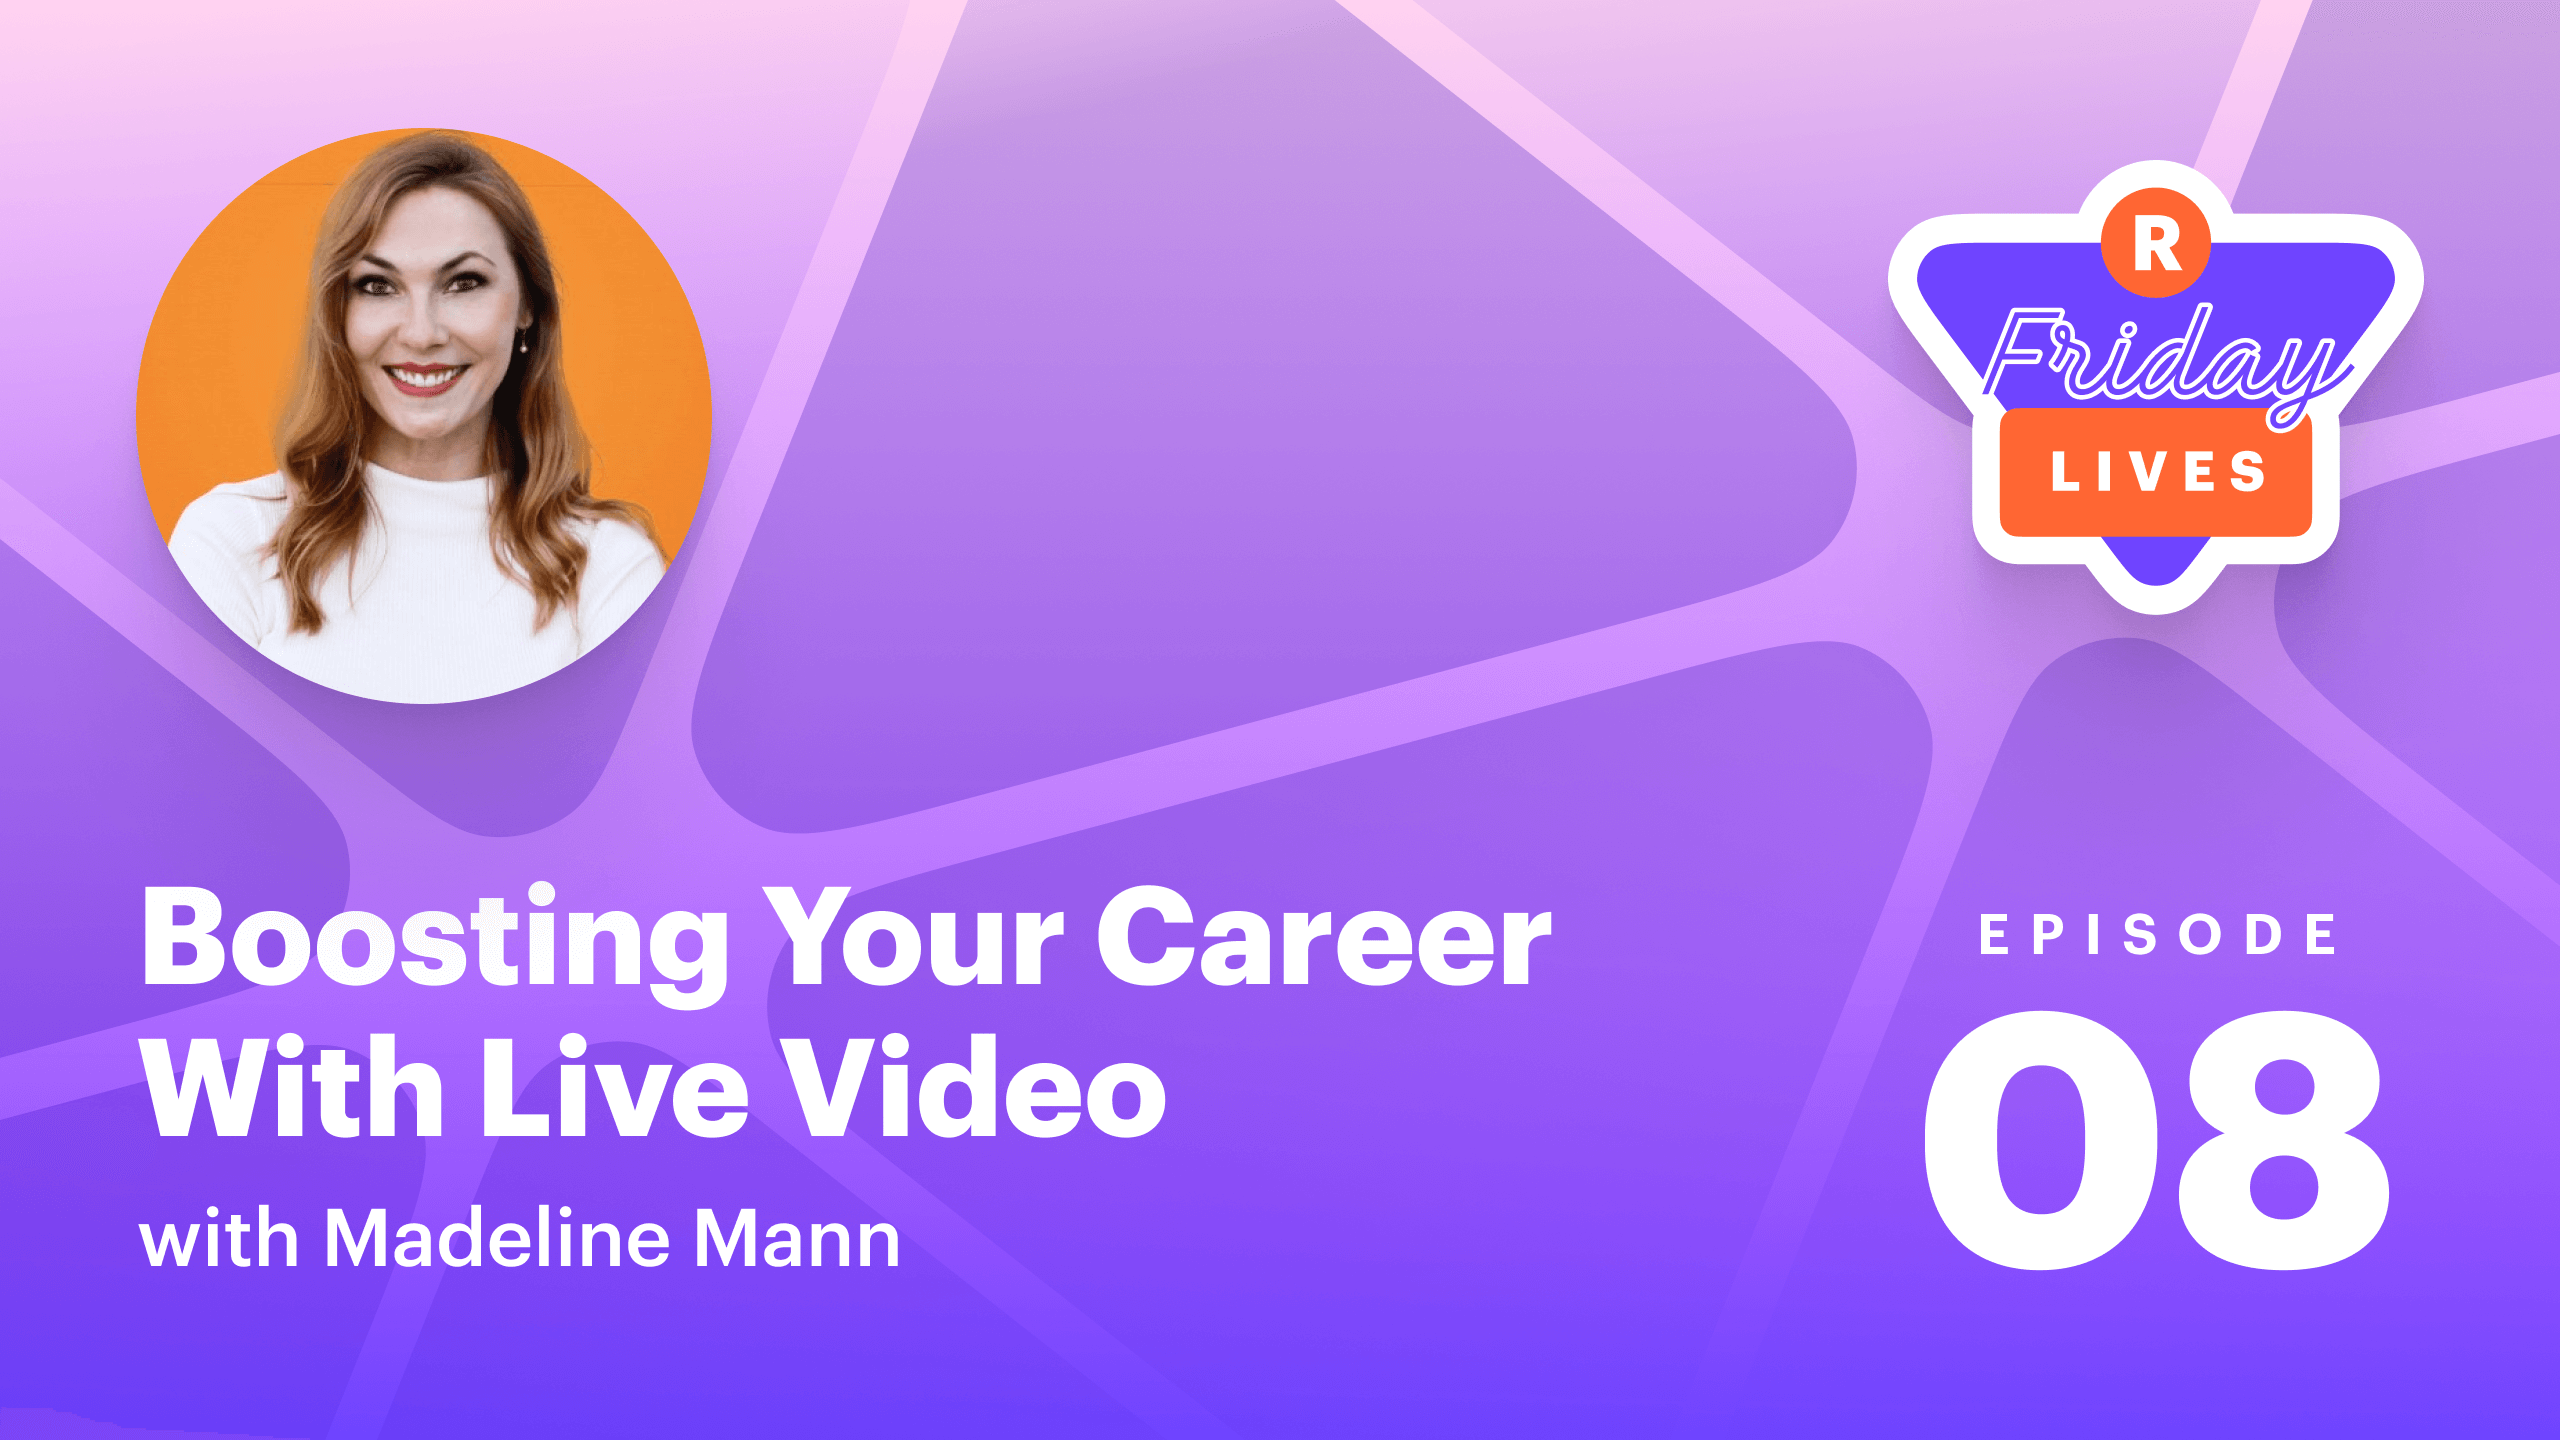 How live streaming video can help you find a job